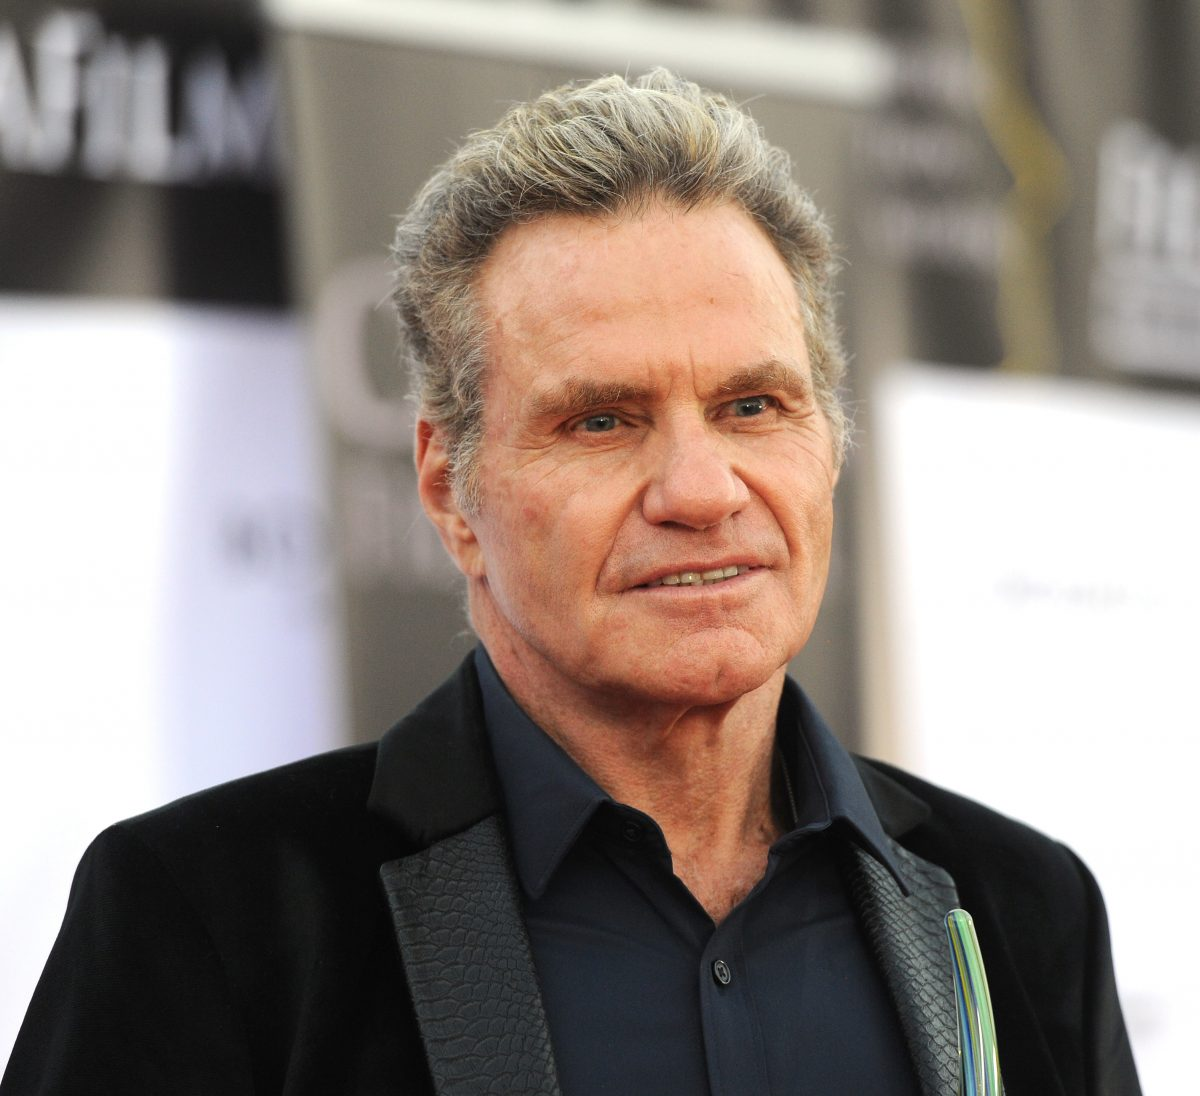 'Cobra Kai' star and 'DWTS' competitor Martin Kove arrives at the Catalina Film Festival honoring him with a Career Tribute held at Scottish Rite Event Center